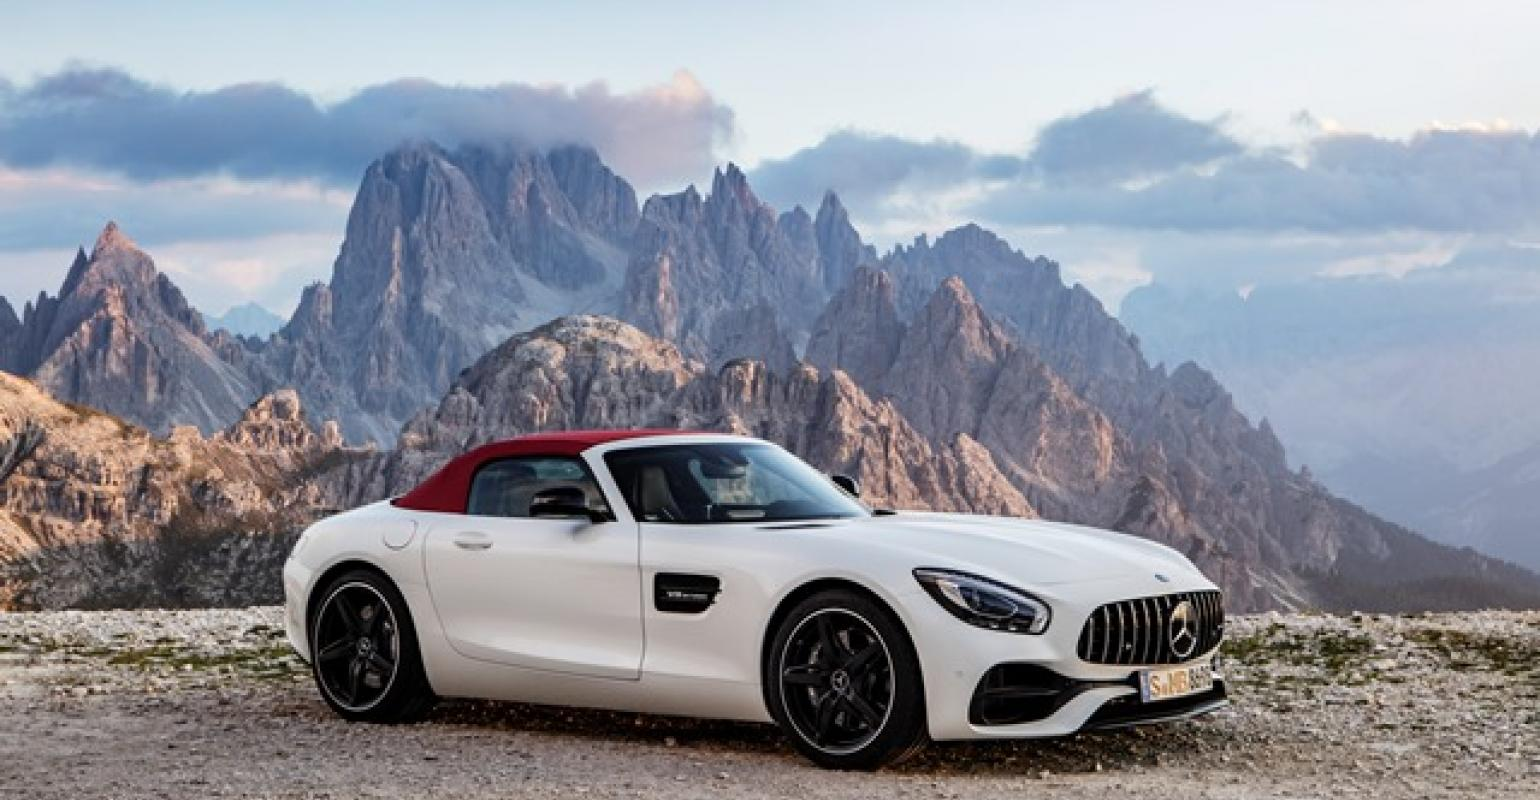 Wraps Come Off Mercedes Amg Gt Roadster Wardsauto